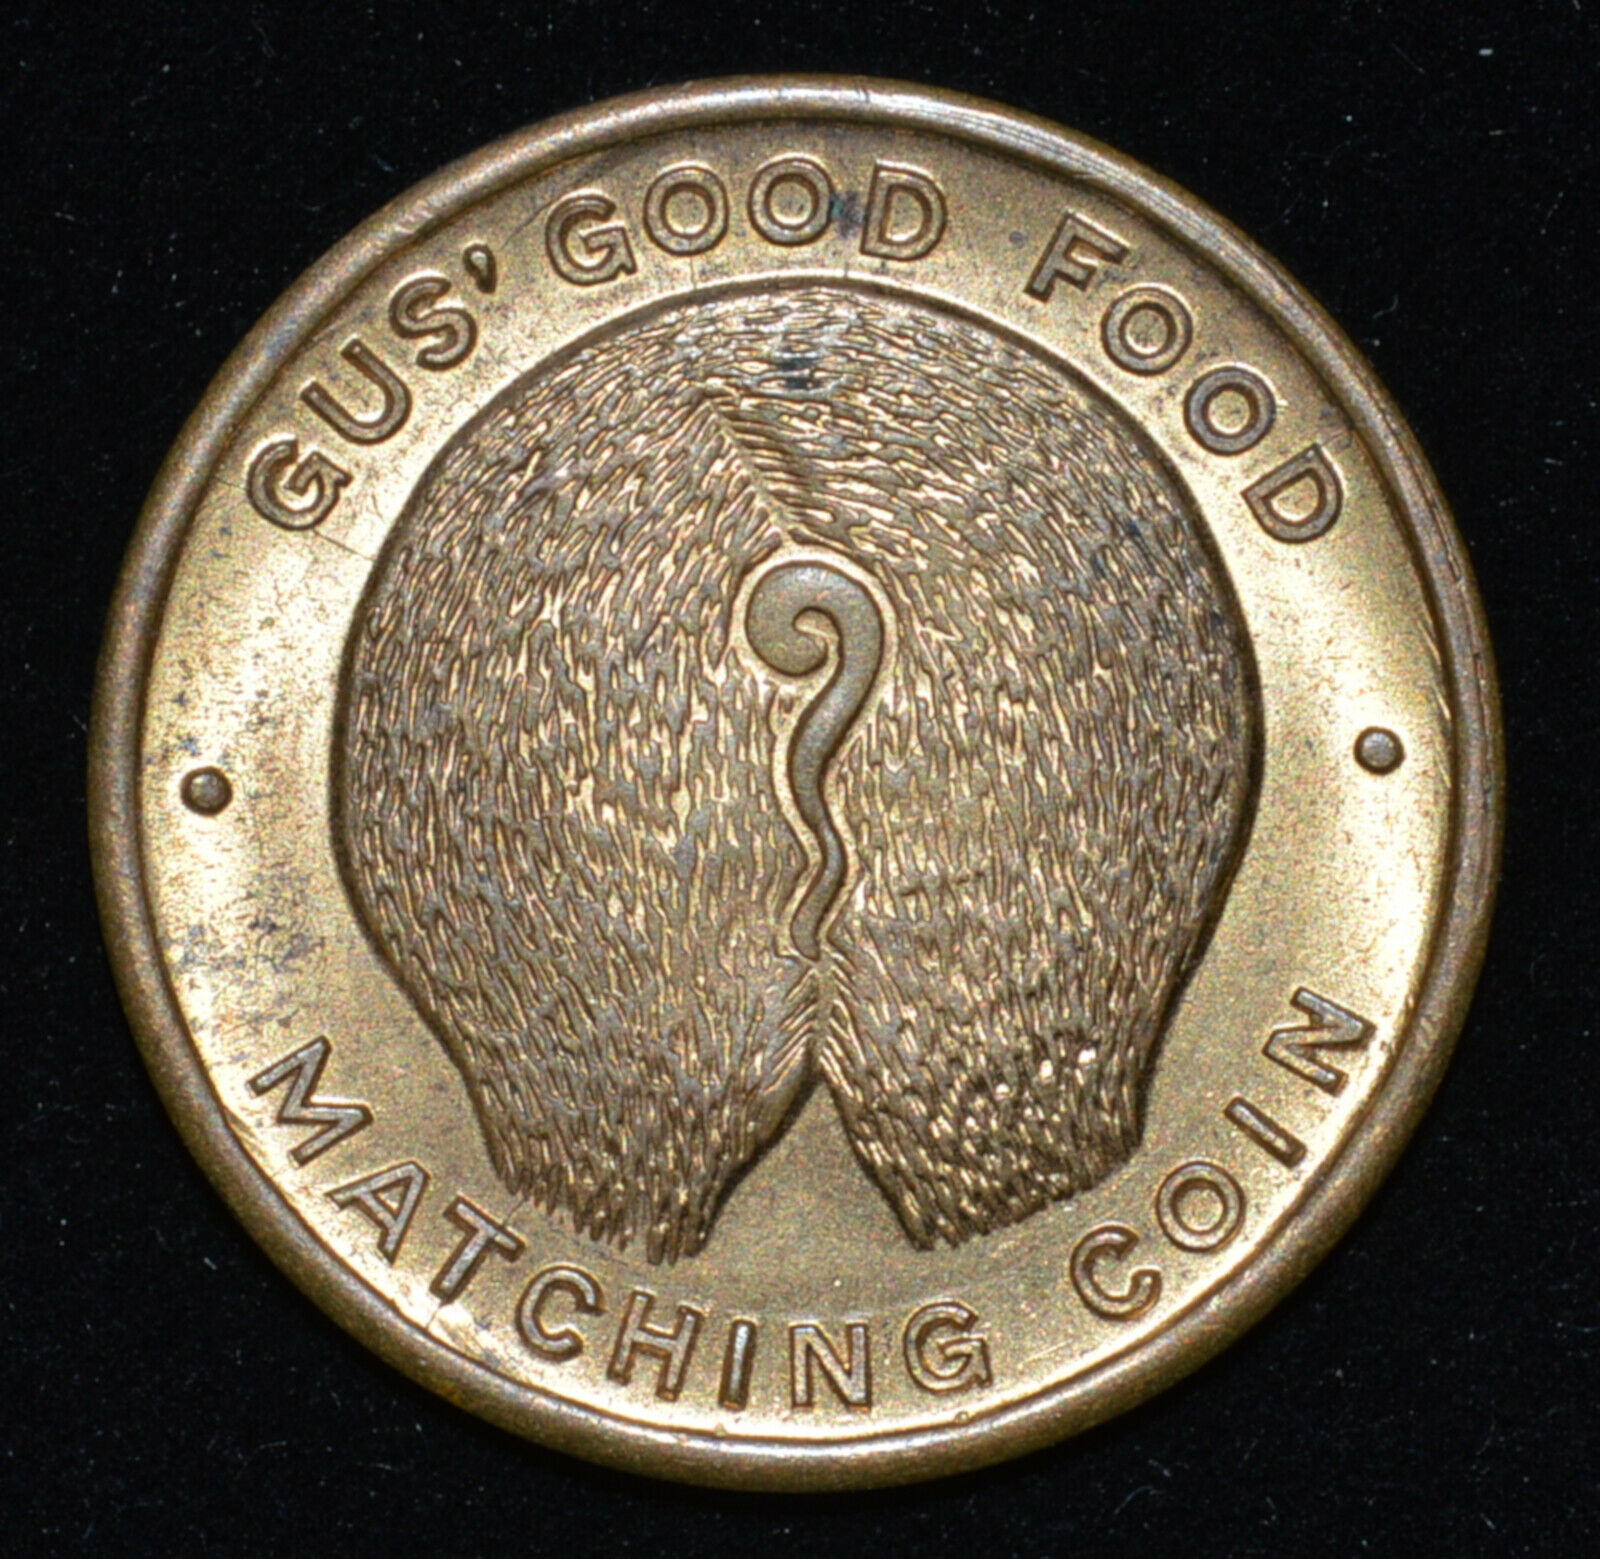 Gus' Good Food Pig Butt Token Chicago 1930's? Matching Coin TC-360046